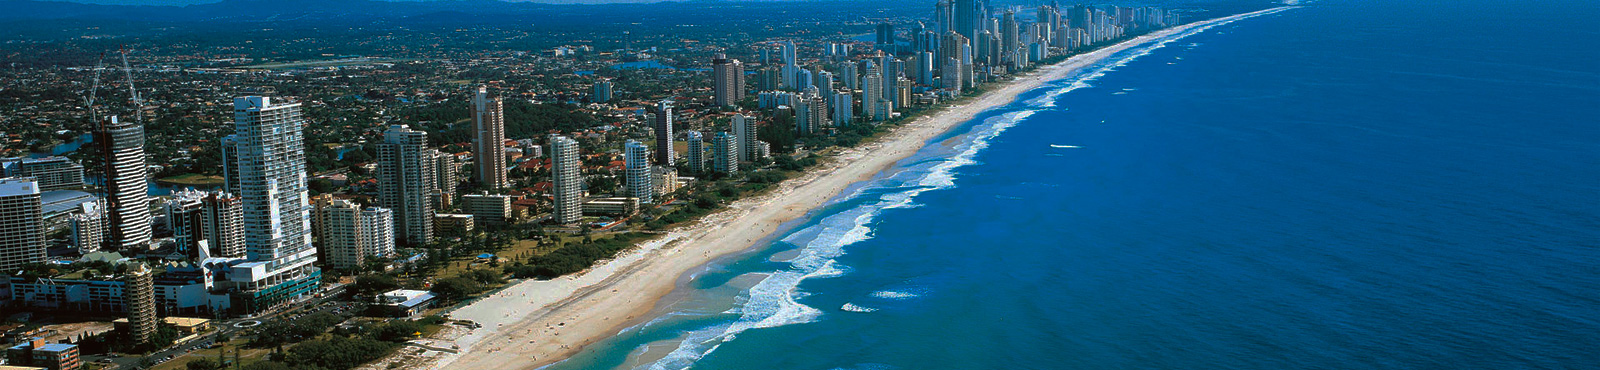 BANNER GOLD COAST CALICULTURAL